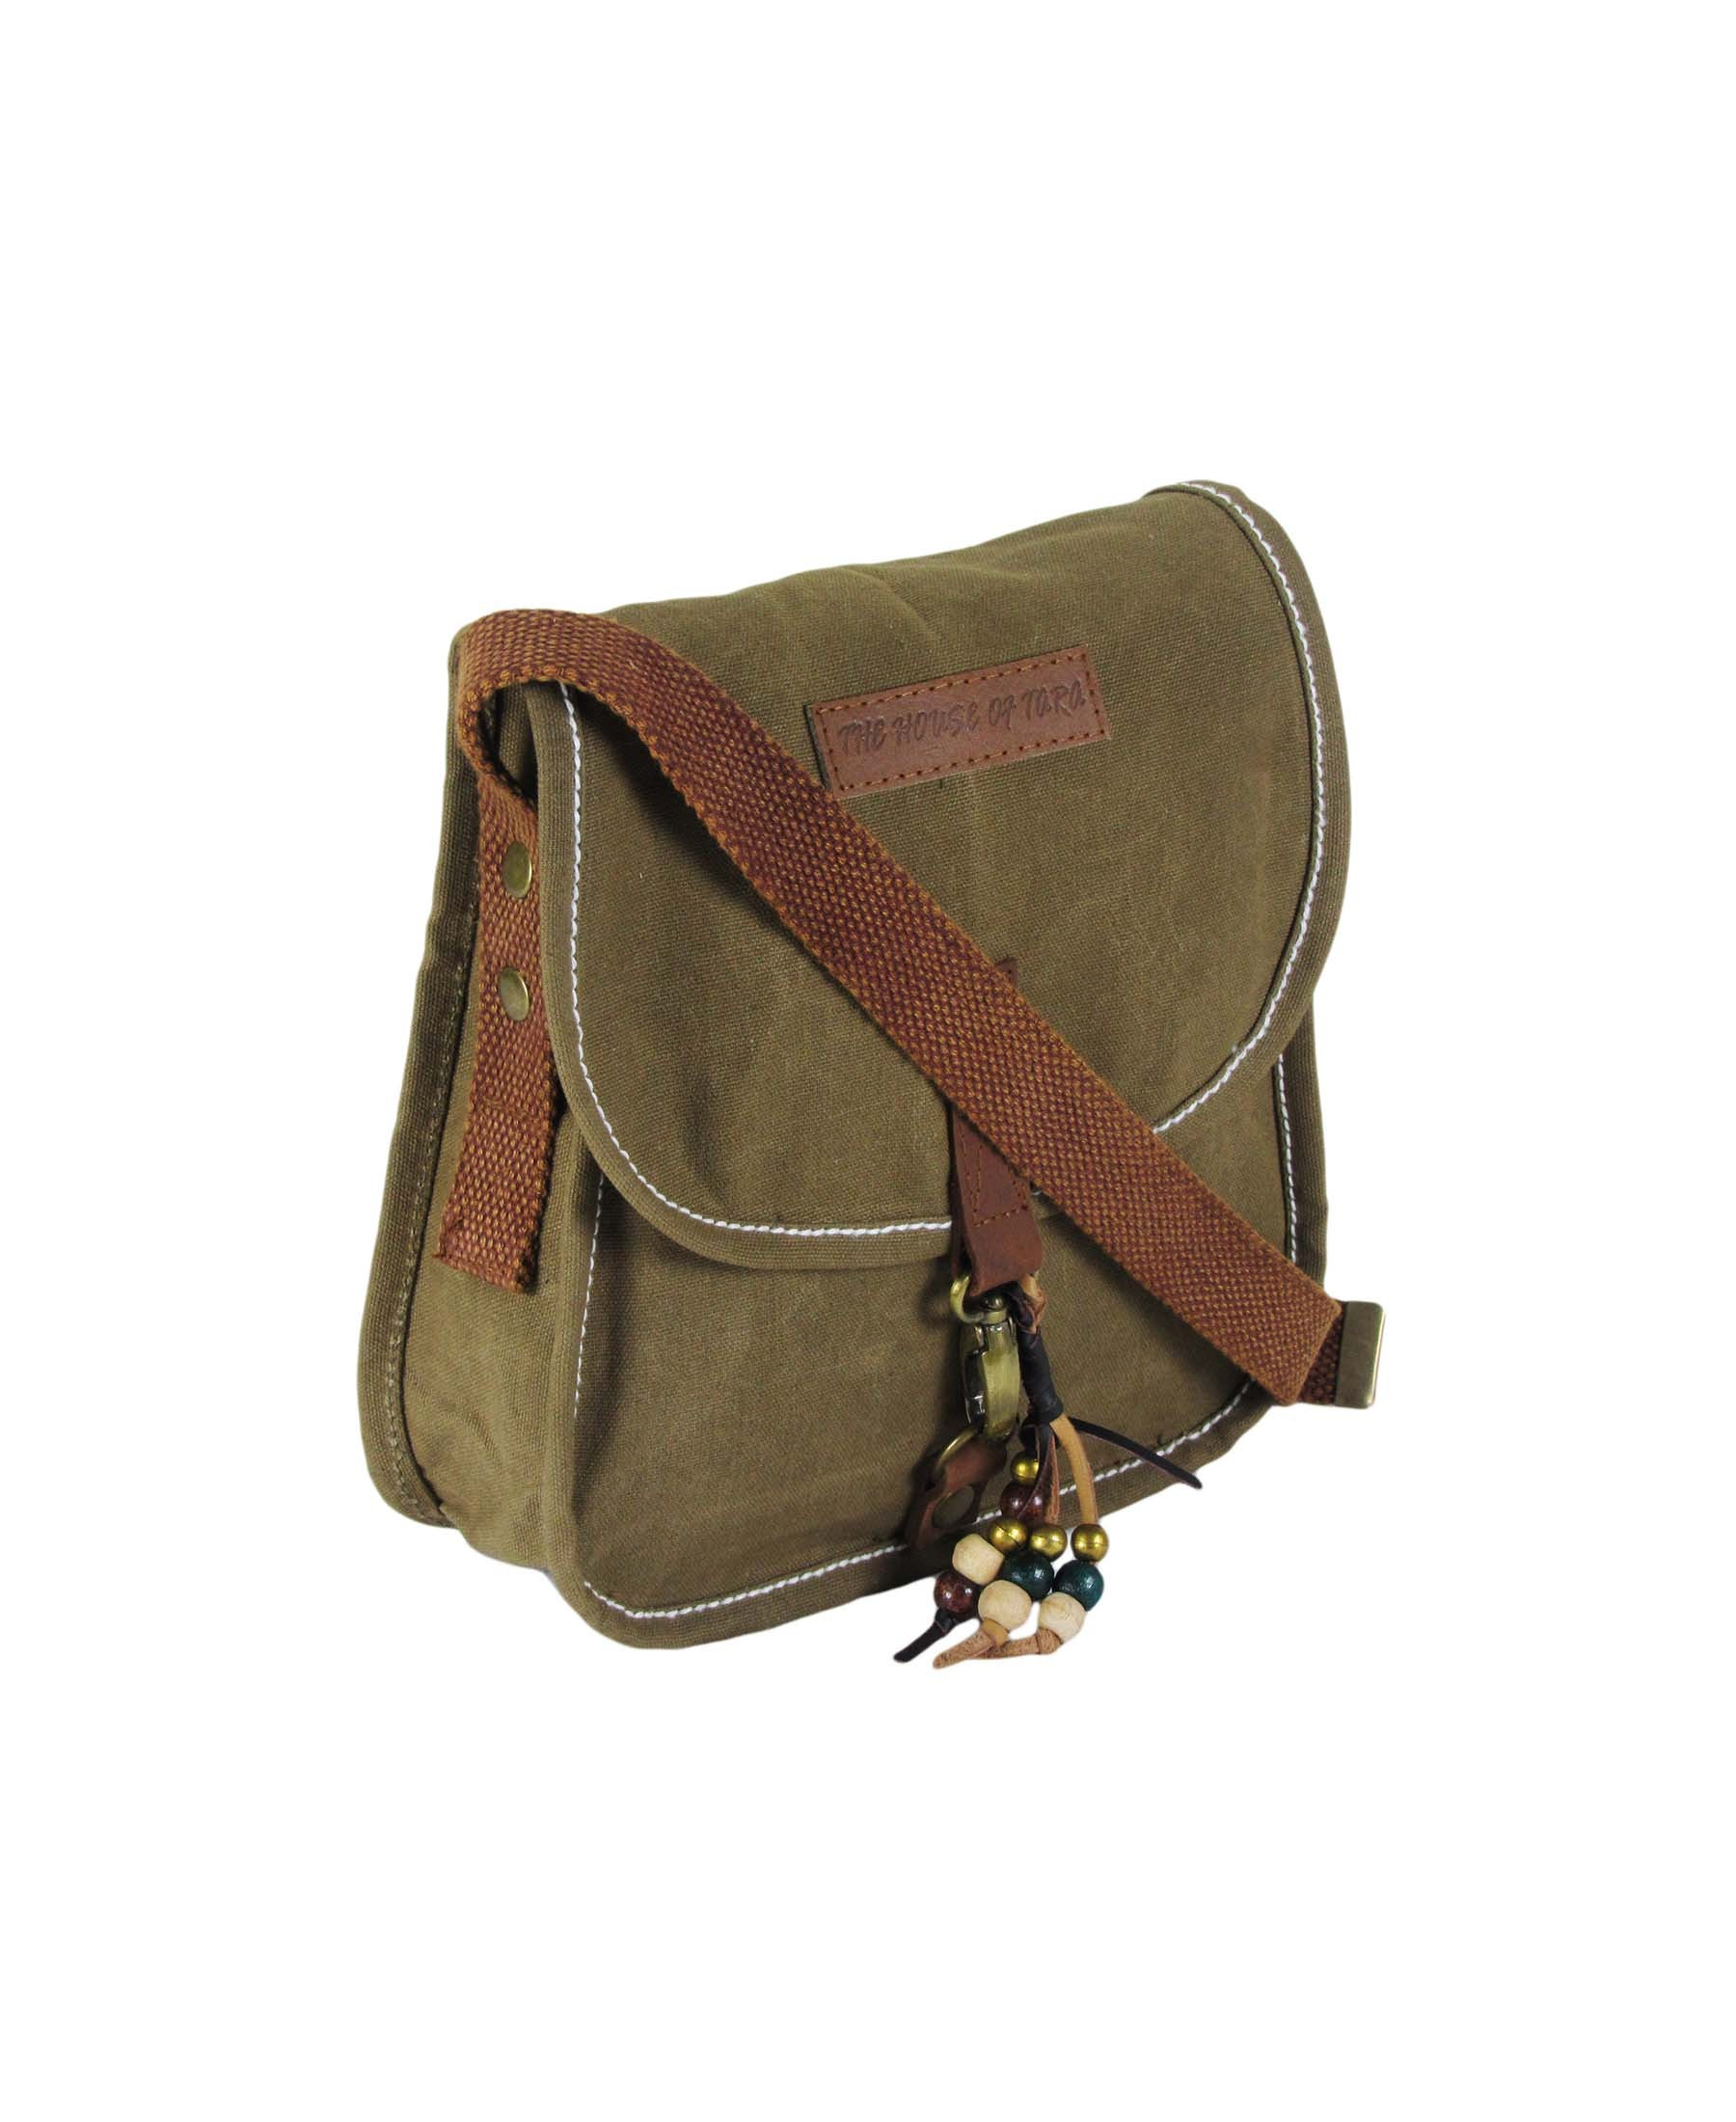 Shop for girls' messenger bags at eBags - experts in bags and accessories since We offer easy returns, expert advice, and millions of customer reviews.